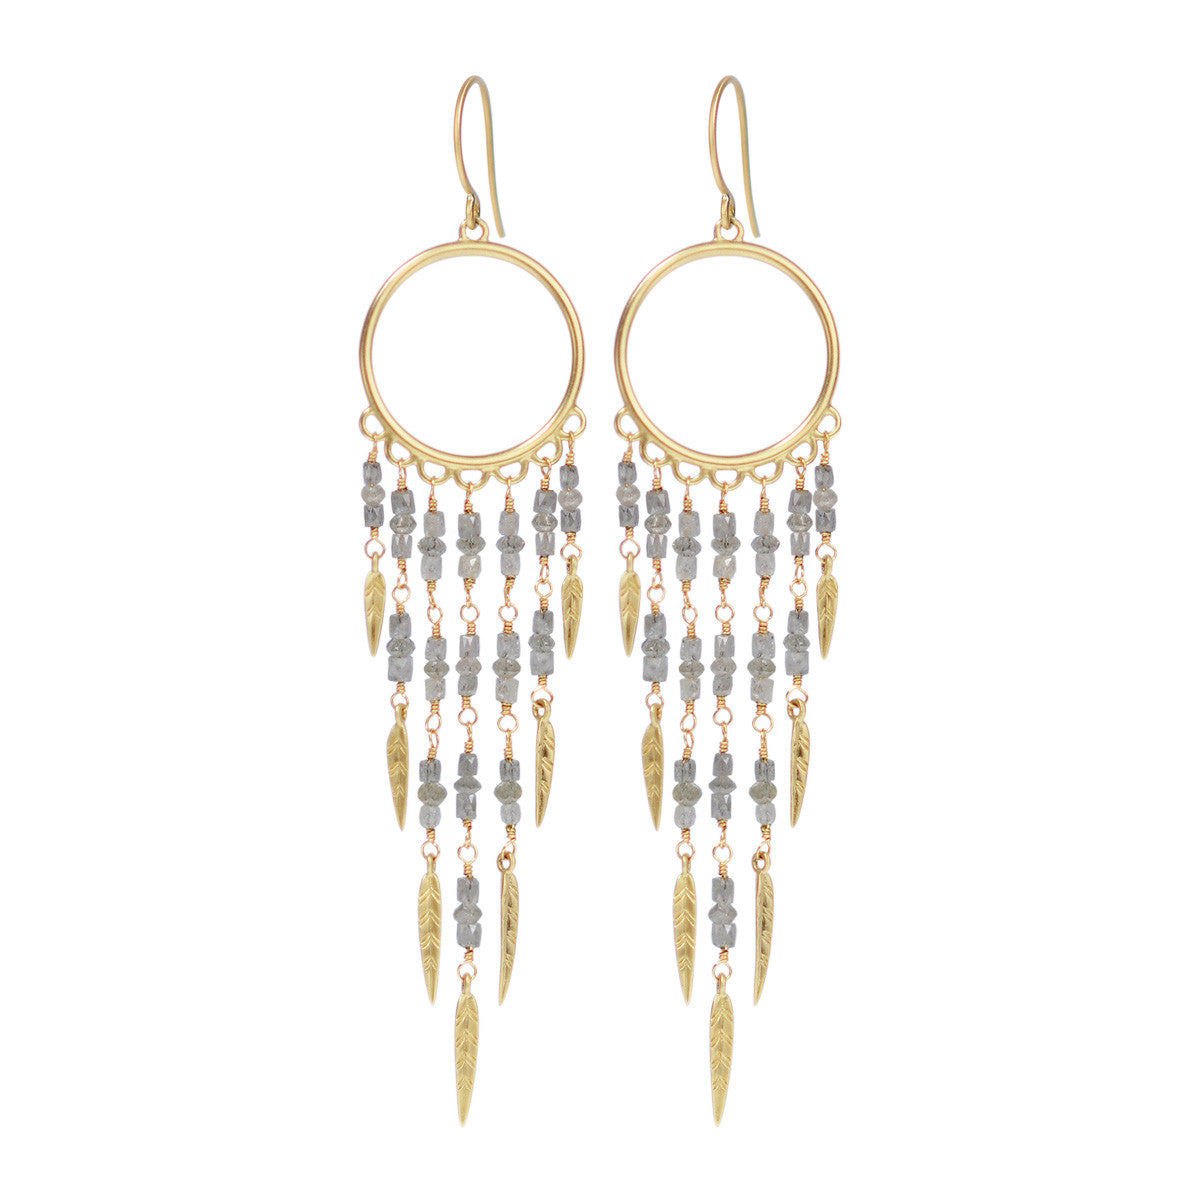 18K Gold Dream Catcher Earrings with Grey Diamonds